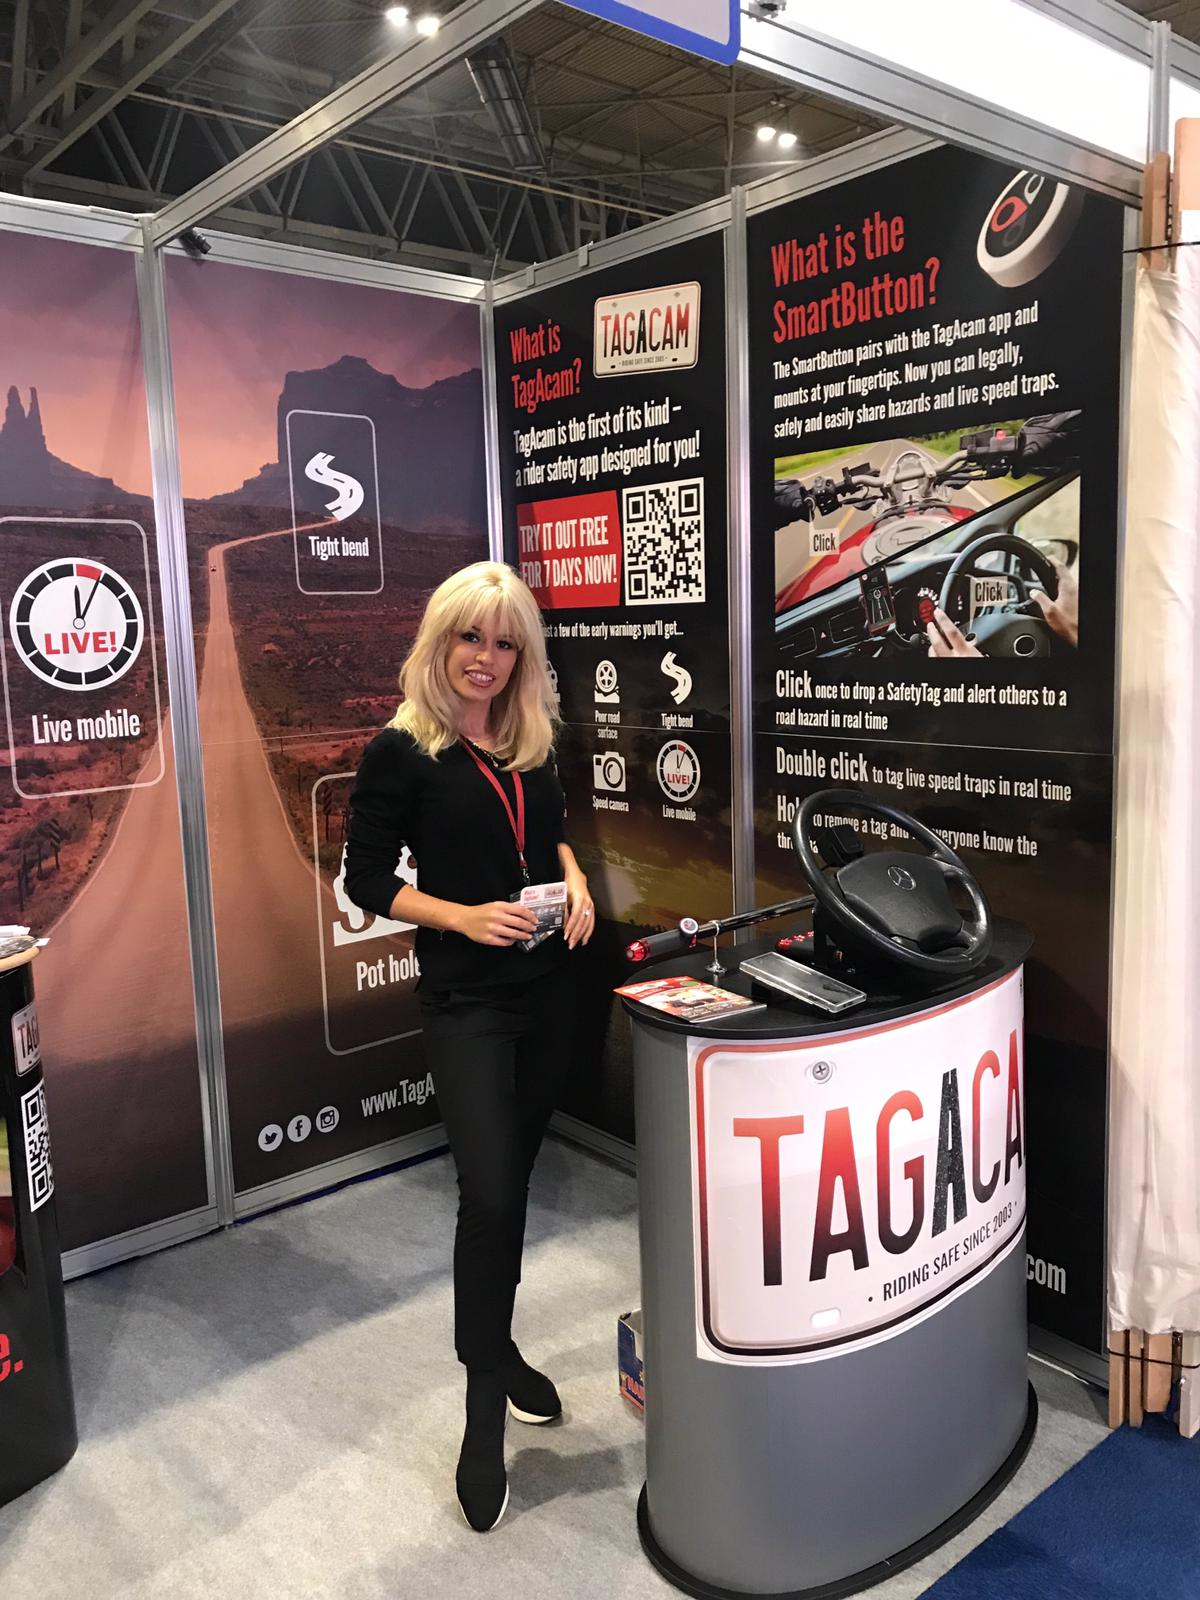 Exhibition Staff for TAGACAM at Motorcycle Live 2018, NEC Birmingham